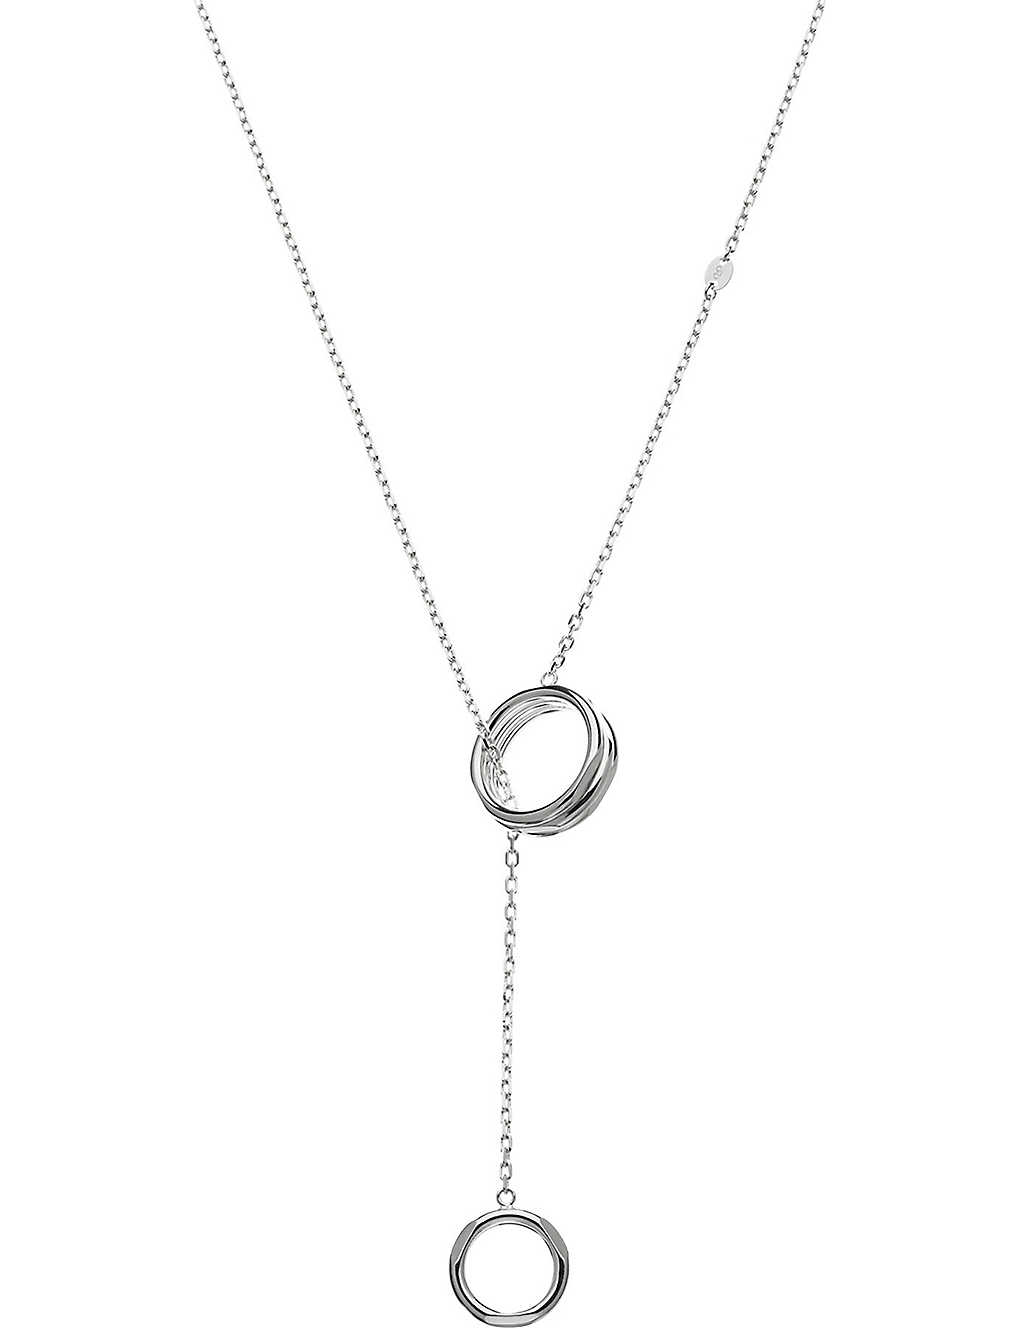 3230e3766041 LINKS OF LONDON - 20/20 sterling silver pendant necklace ...